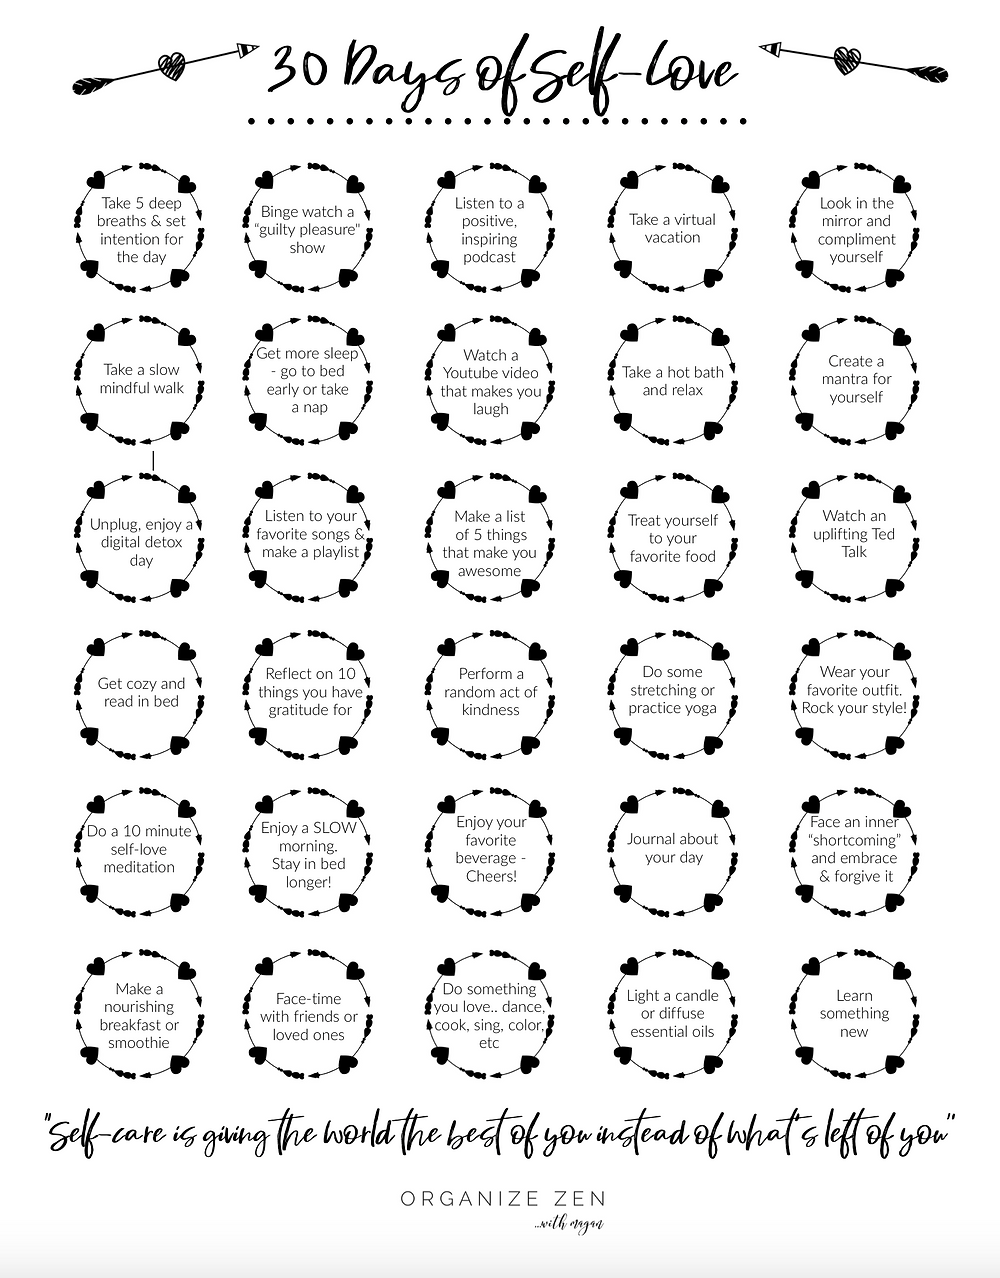 30 Days of Self-Love Self-Care Printable Worksheet